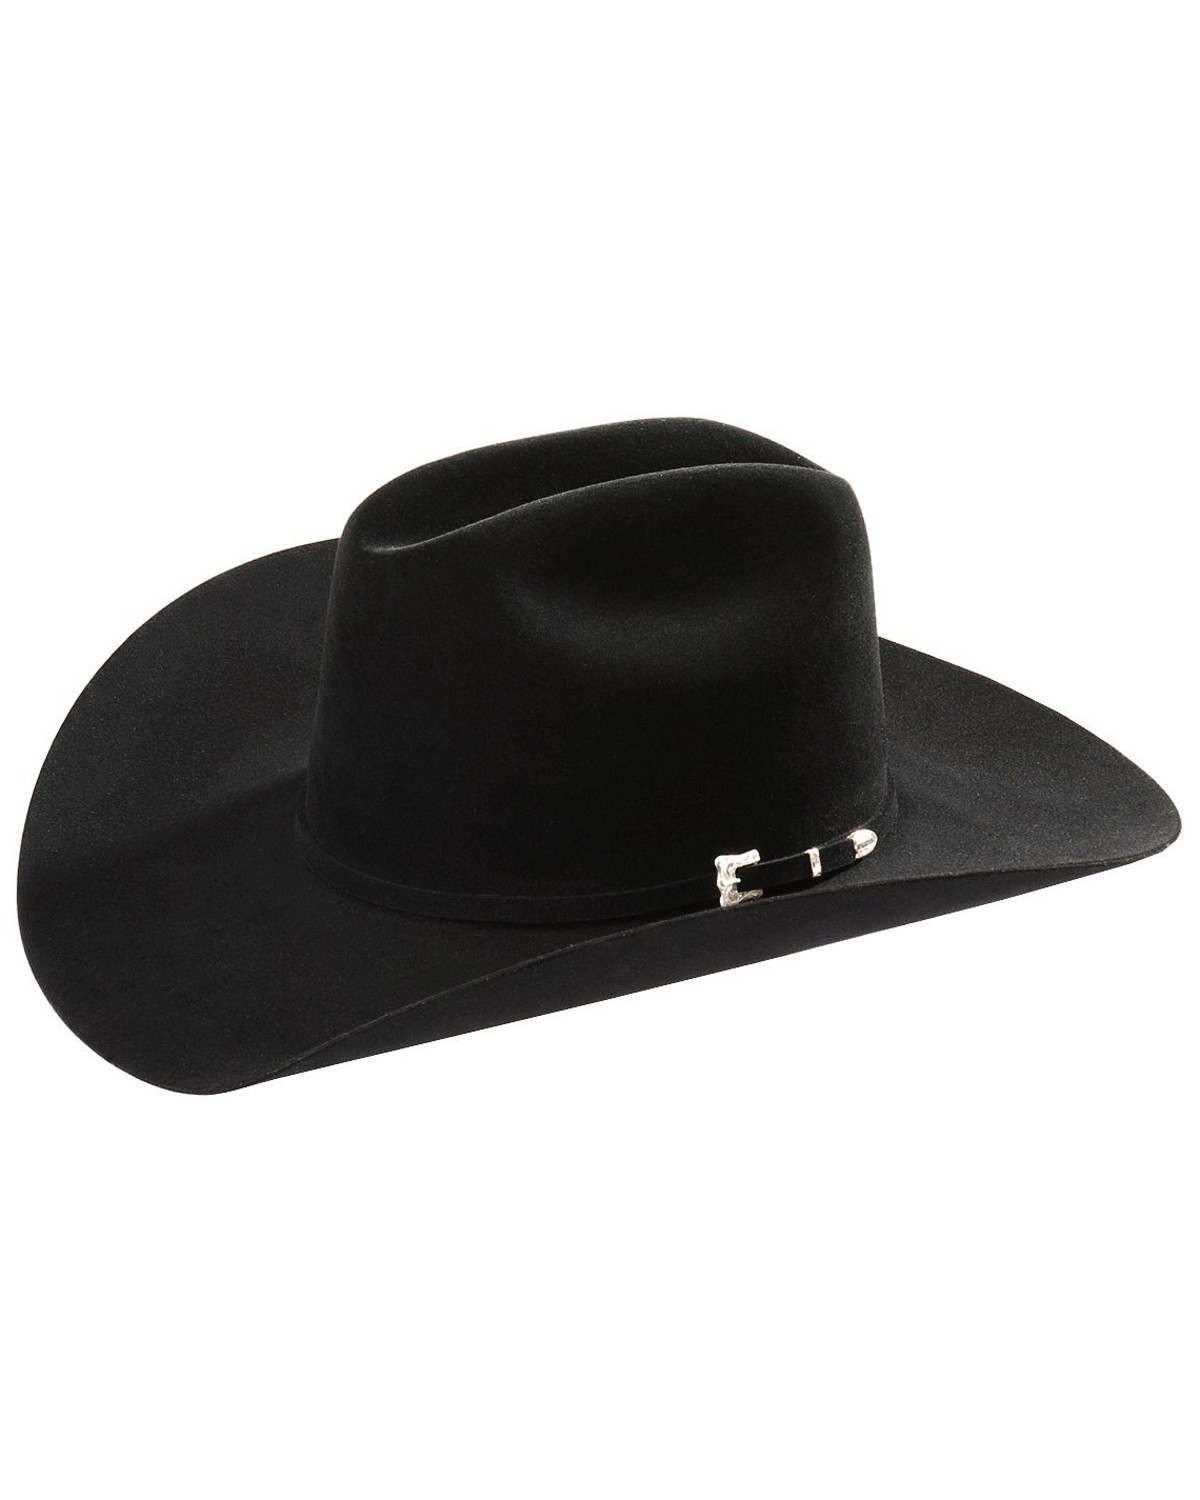 Resistol Black Gold Low Crown 20x Fur Felt Cowboy Hat Sheplers 01ee9dcecf38